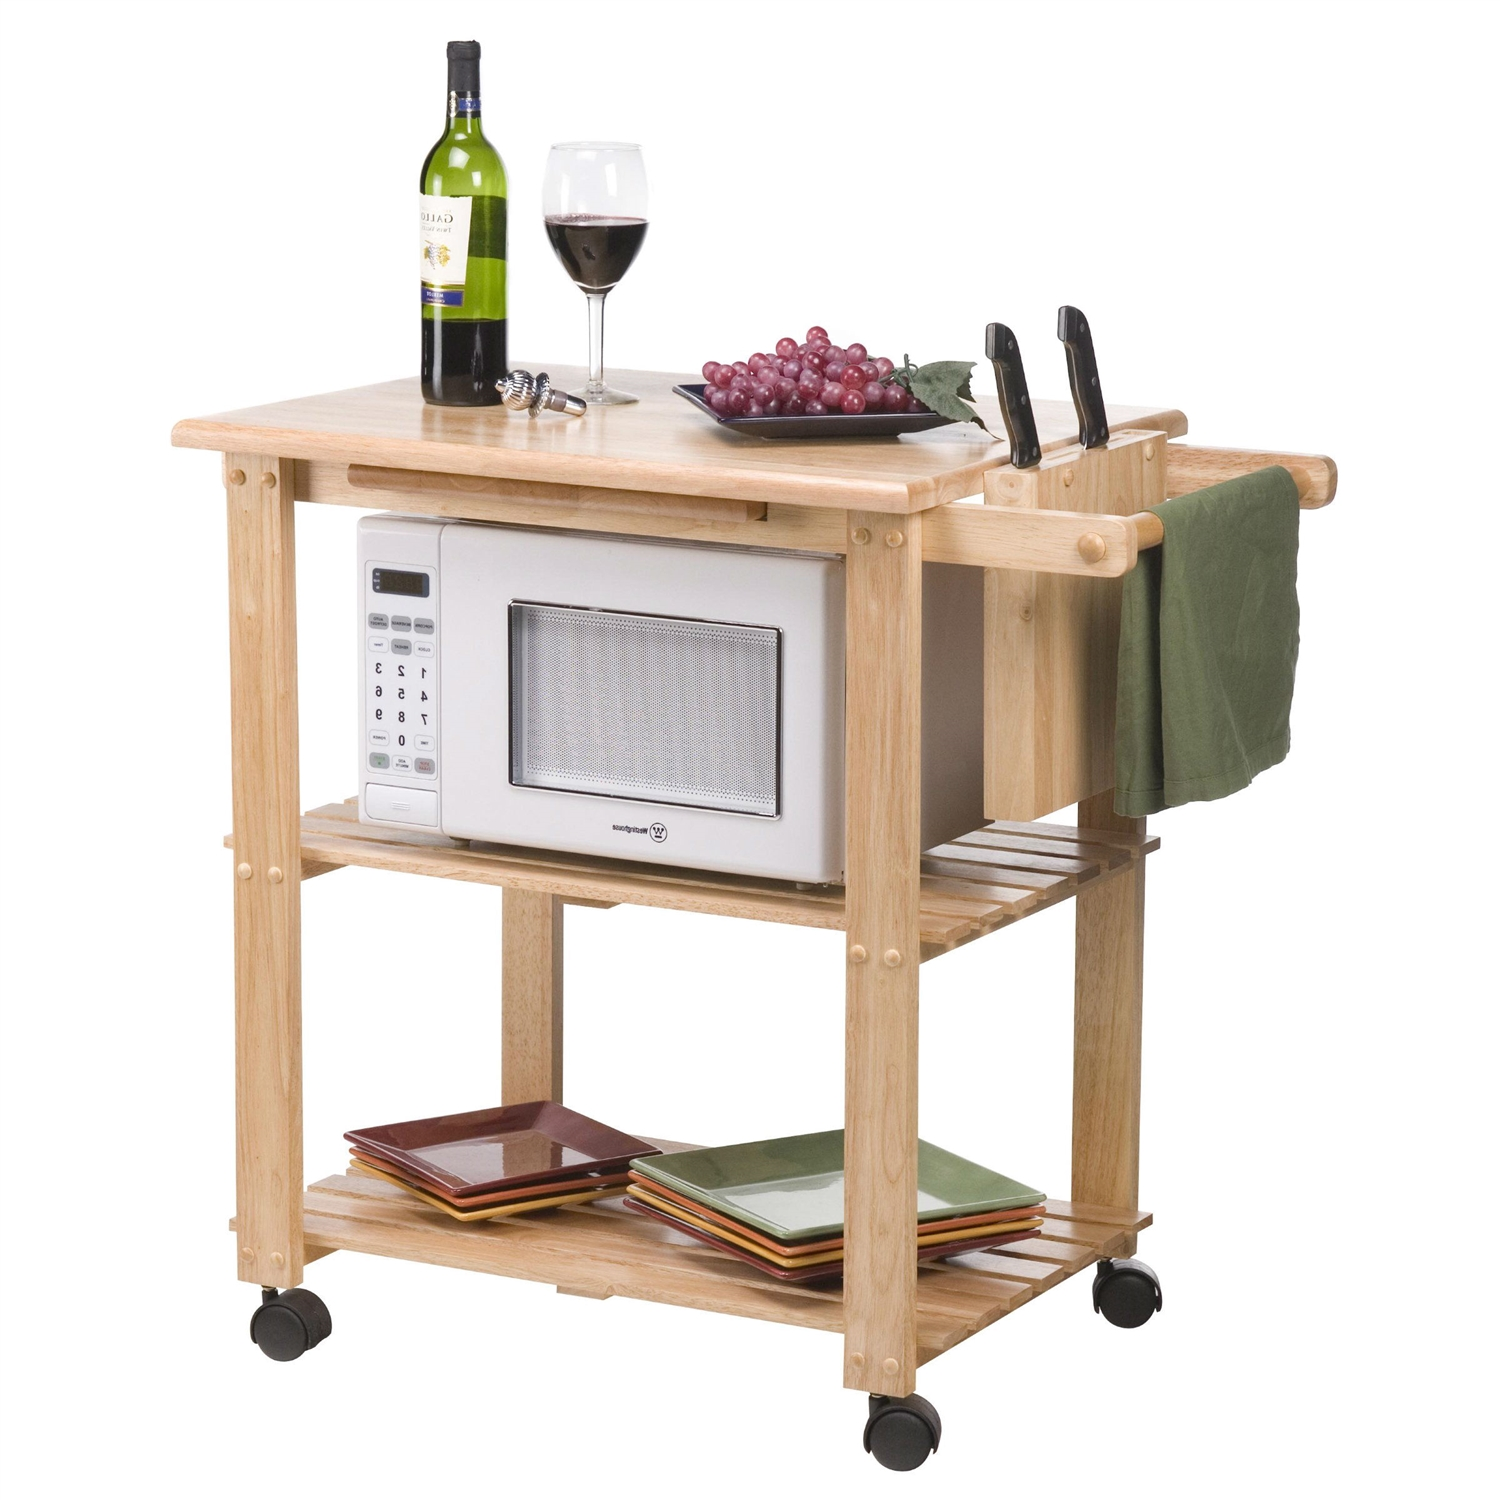 Perfect Solid Wood Kitchen Utility Microwave Cart With Pull Out Cutting Board